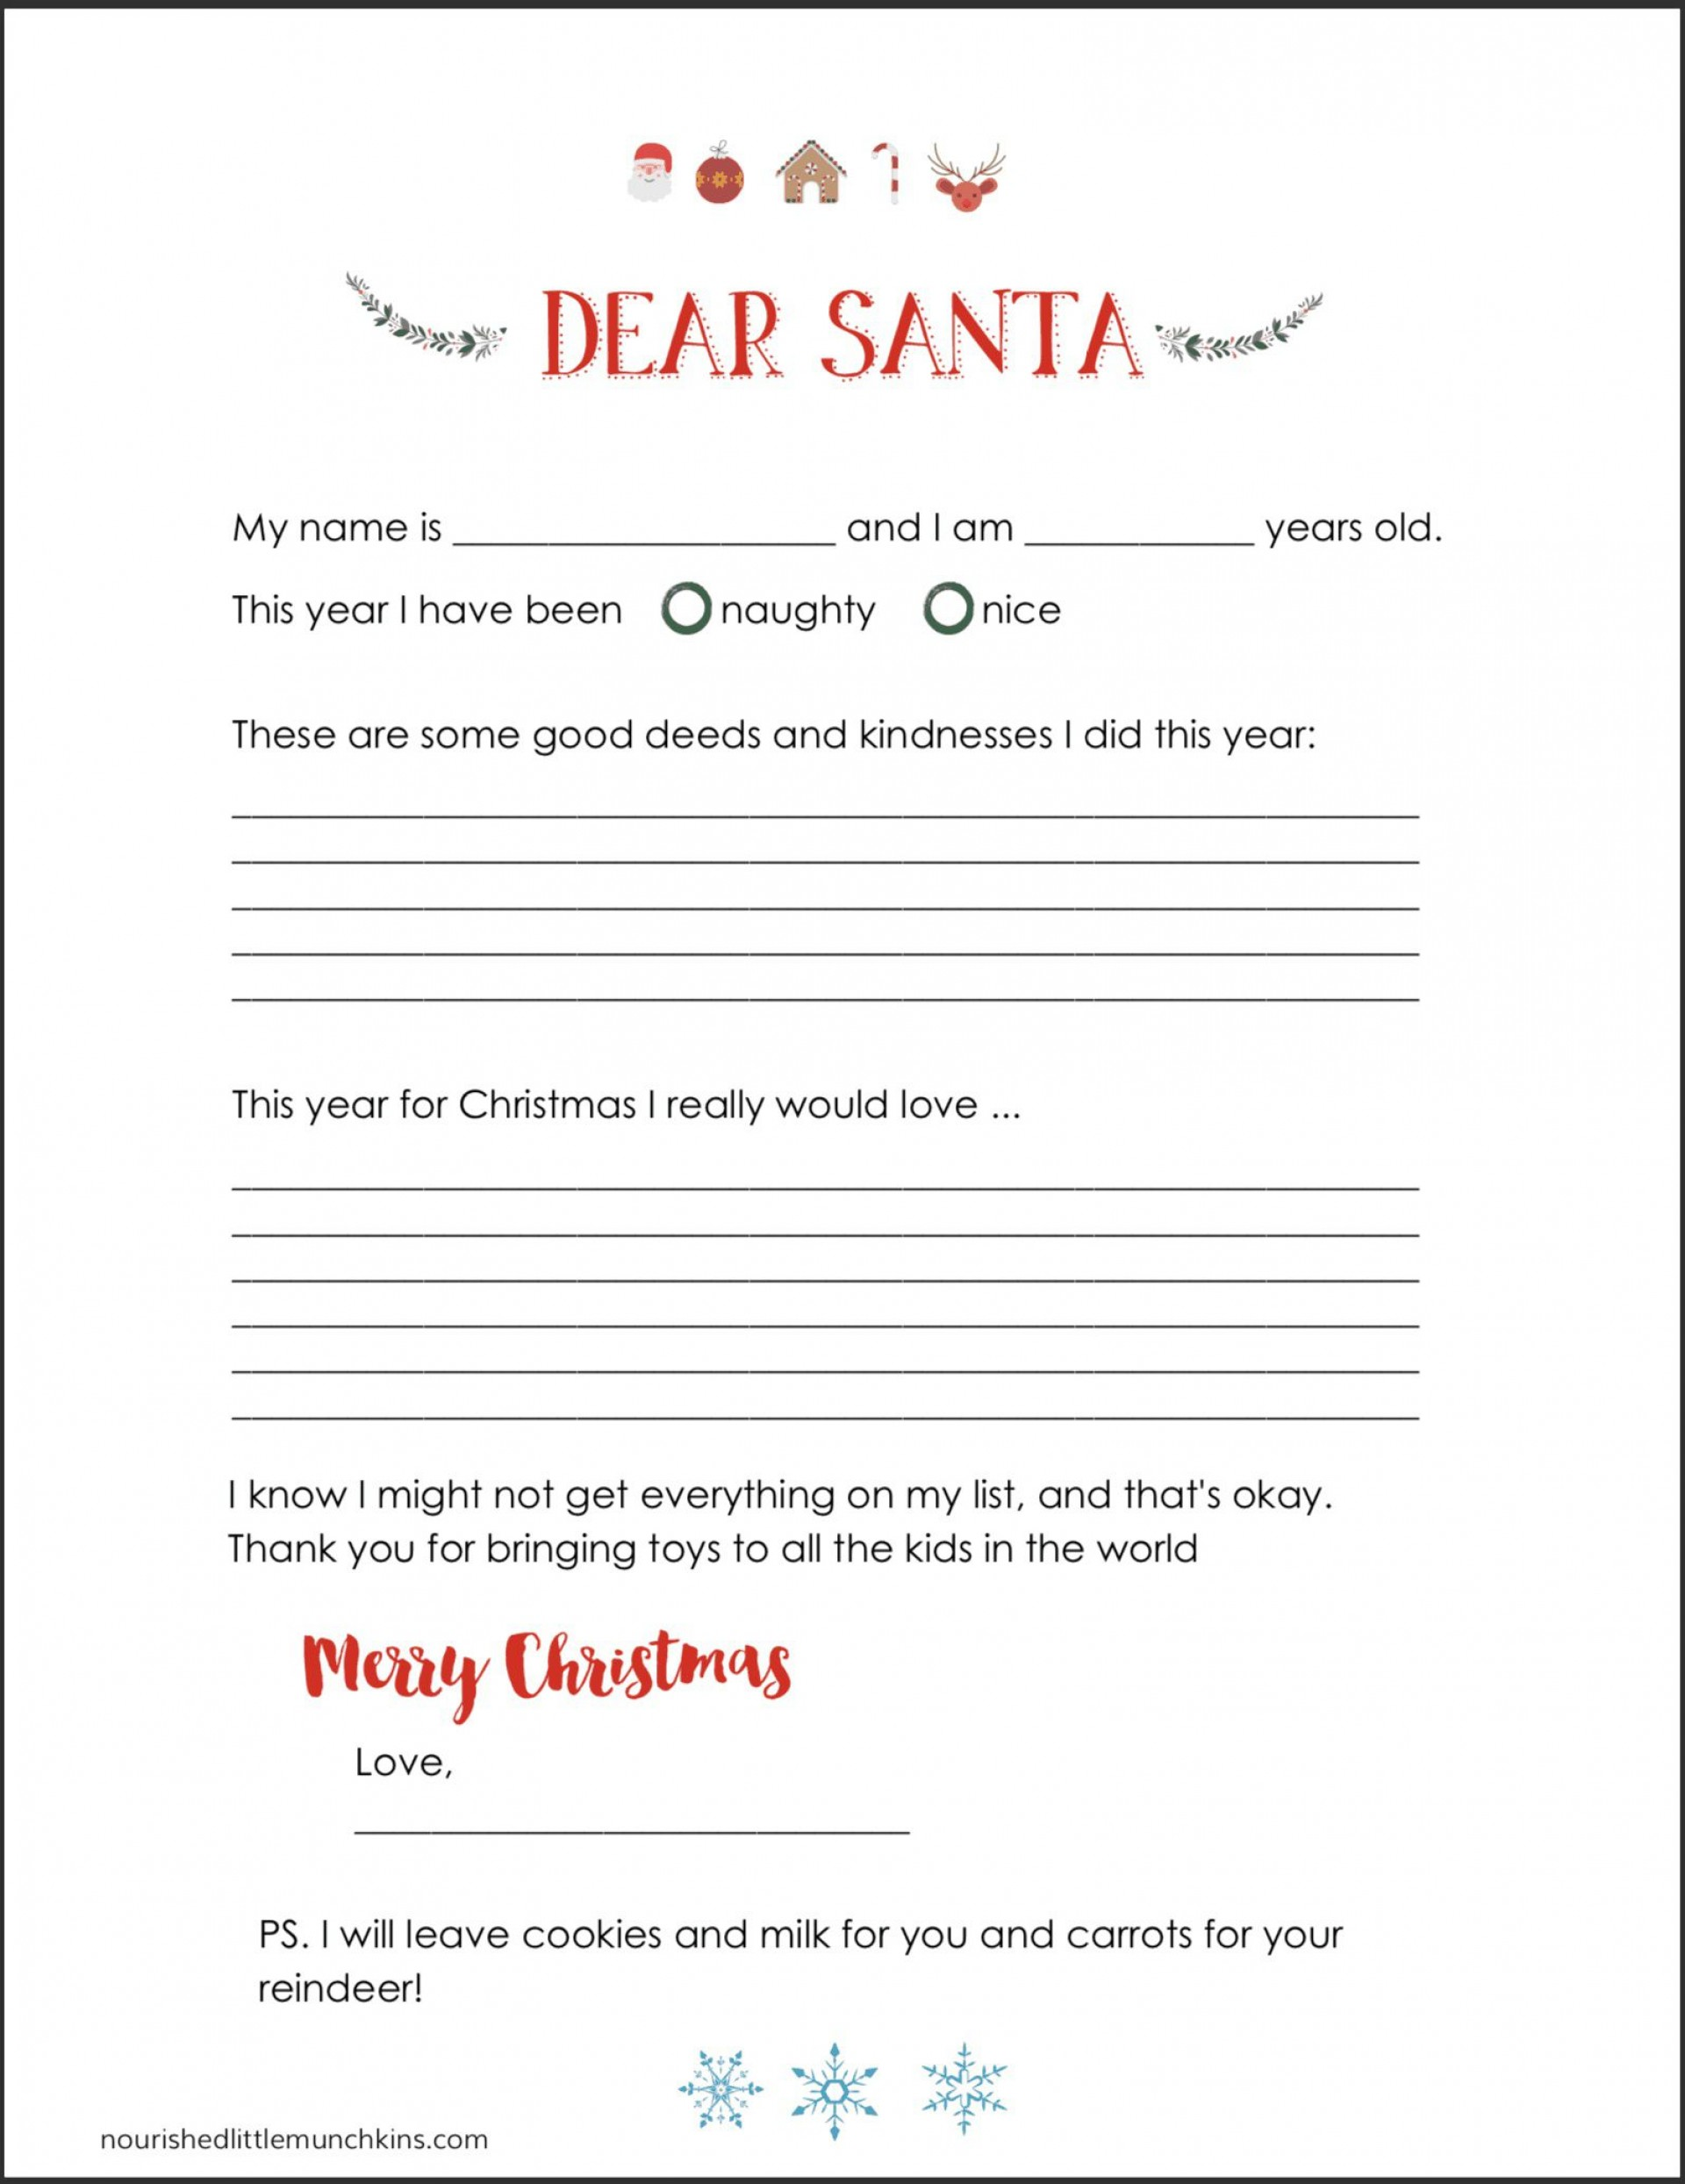 008 Wondrou Letter From Santa Template Example  Free Printable Word Doc Uk1920